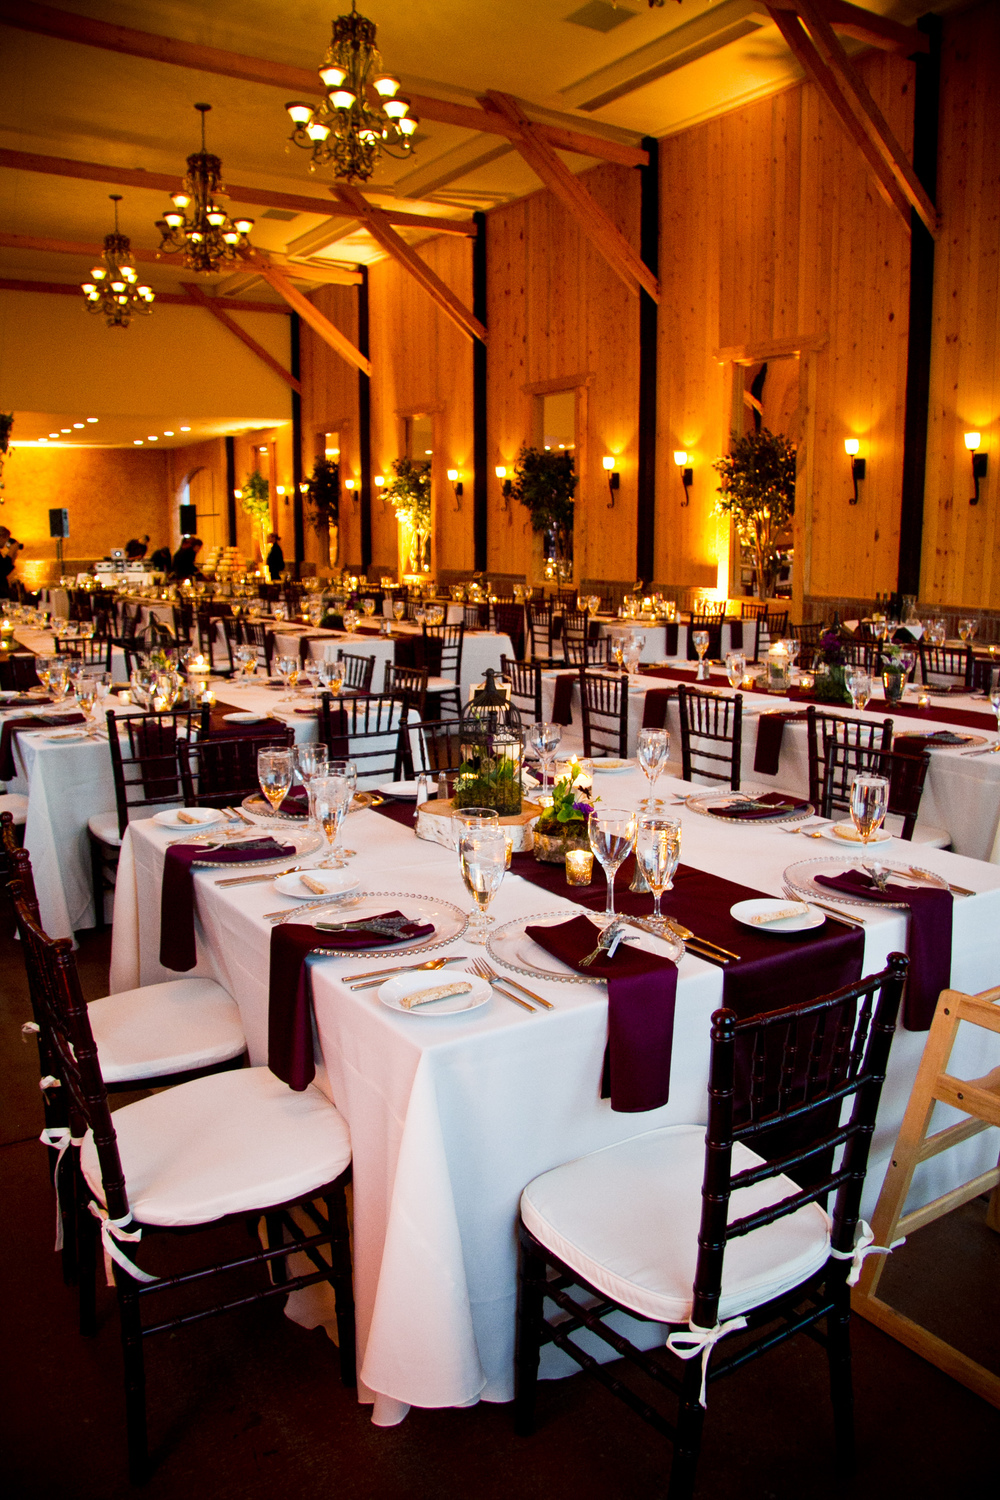 Crooked_Willow_Farms__Sedalia_Wedding_043.JPG